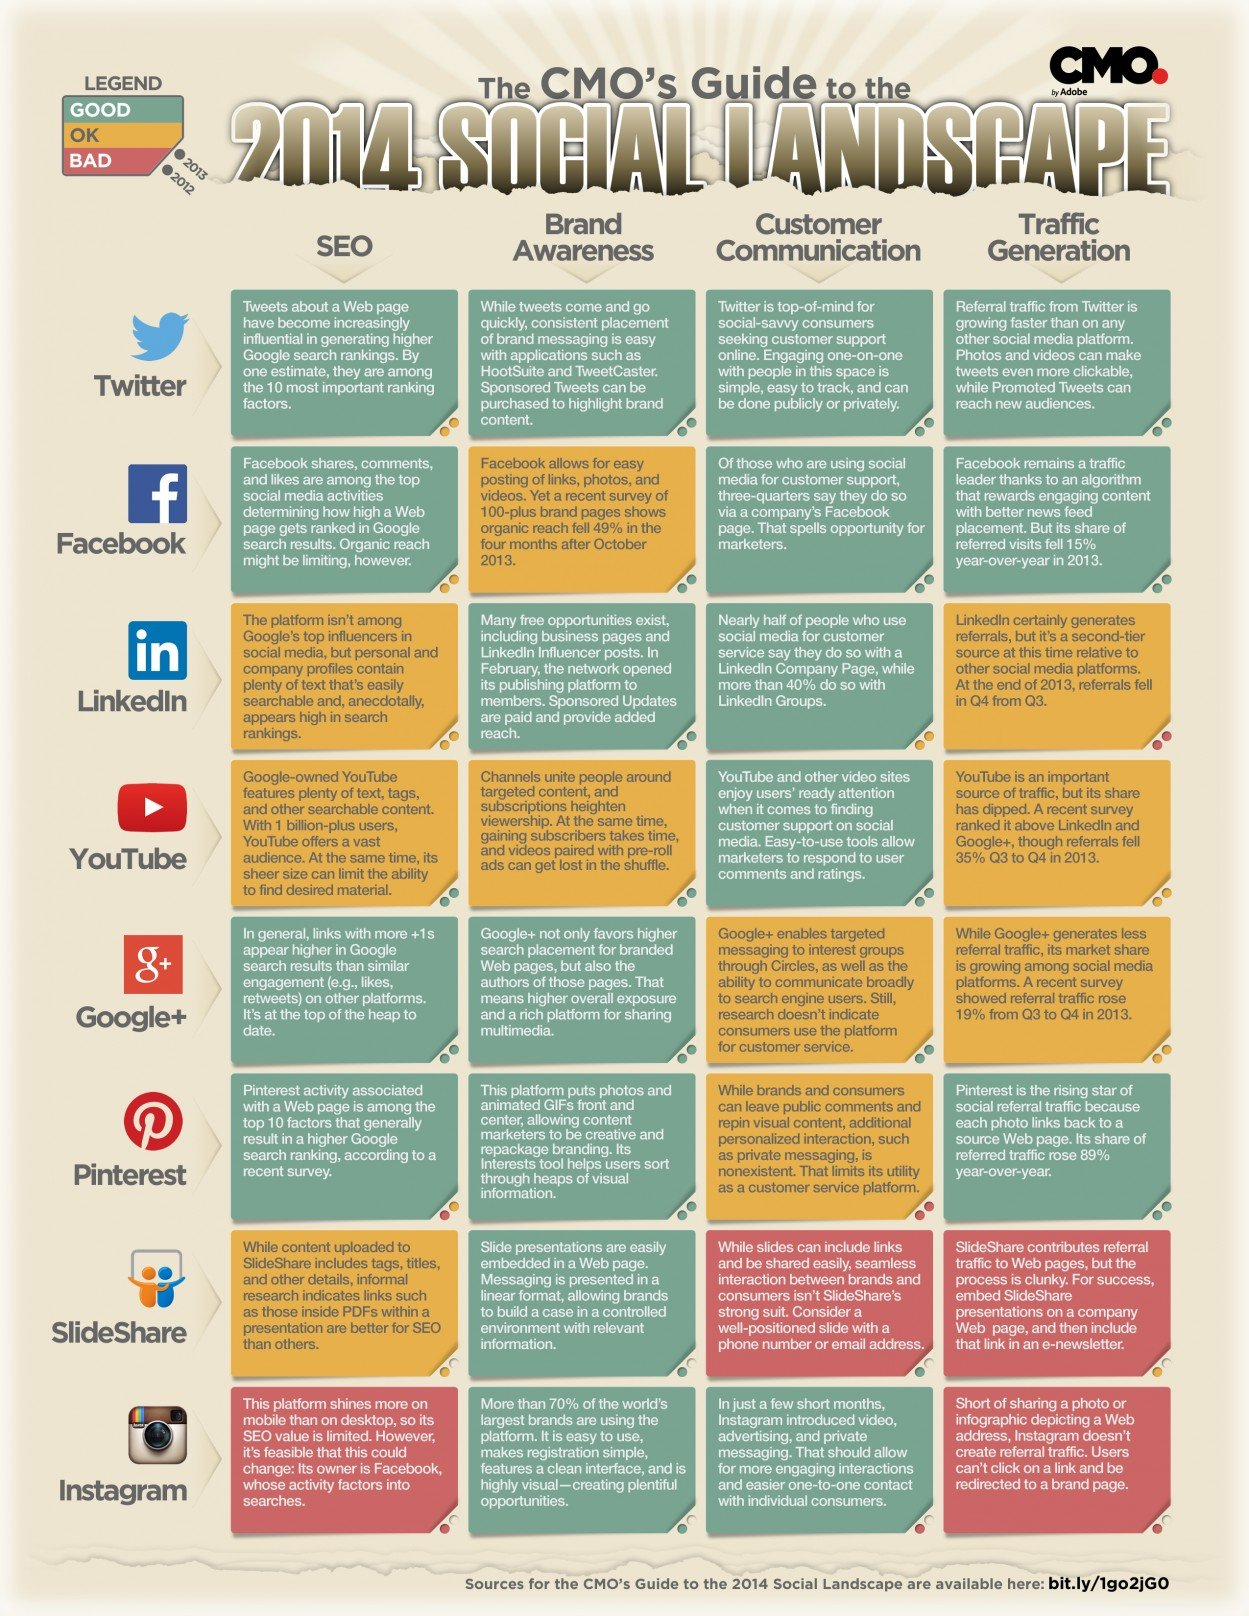 the-cmos-guide-to-the-2014-social-landscape_532b26d0144c1_w1249